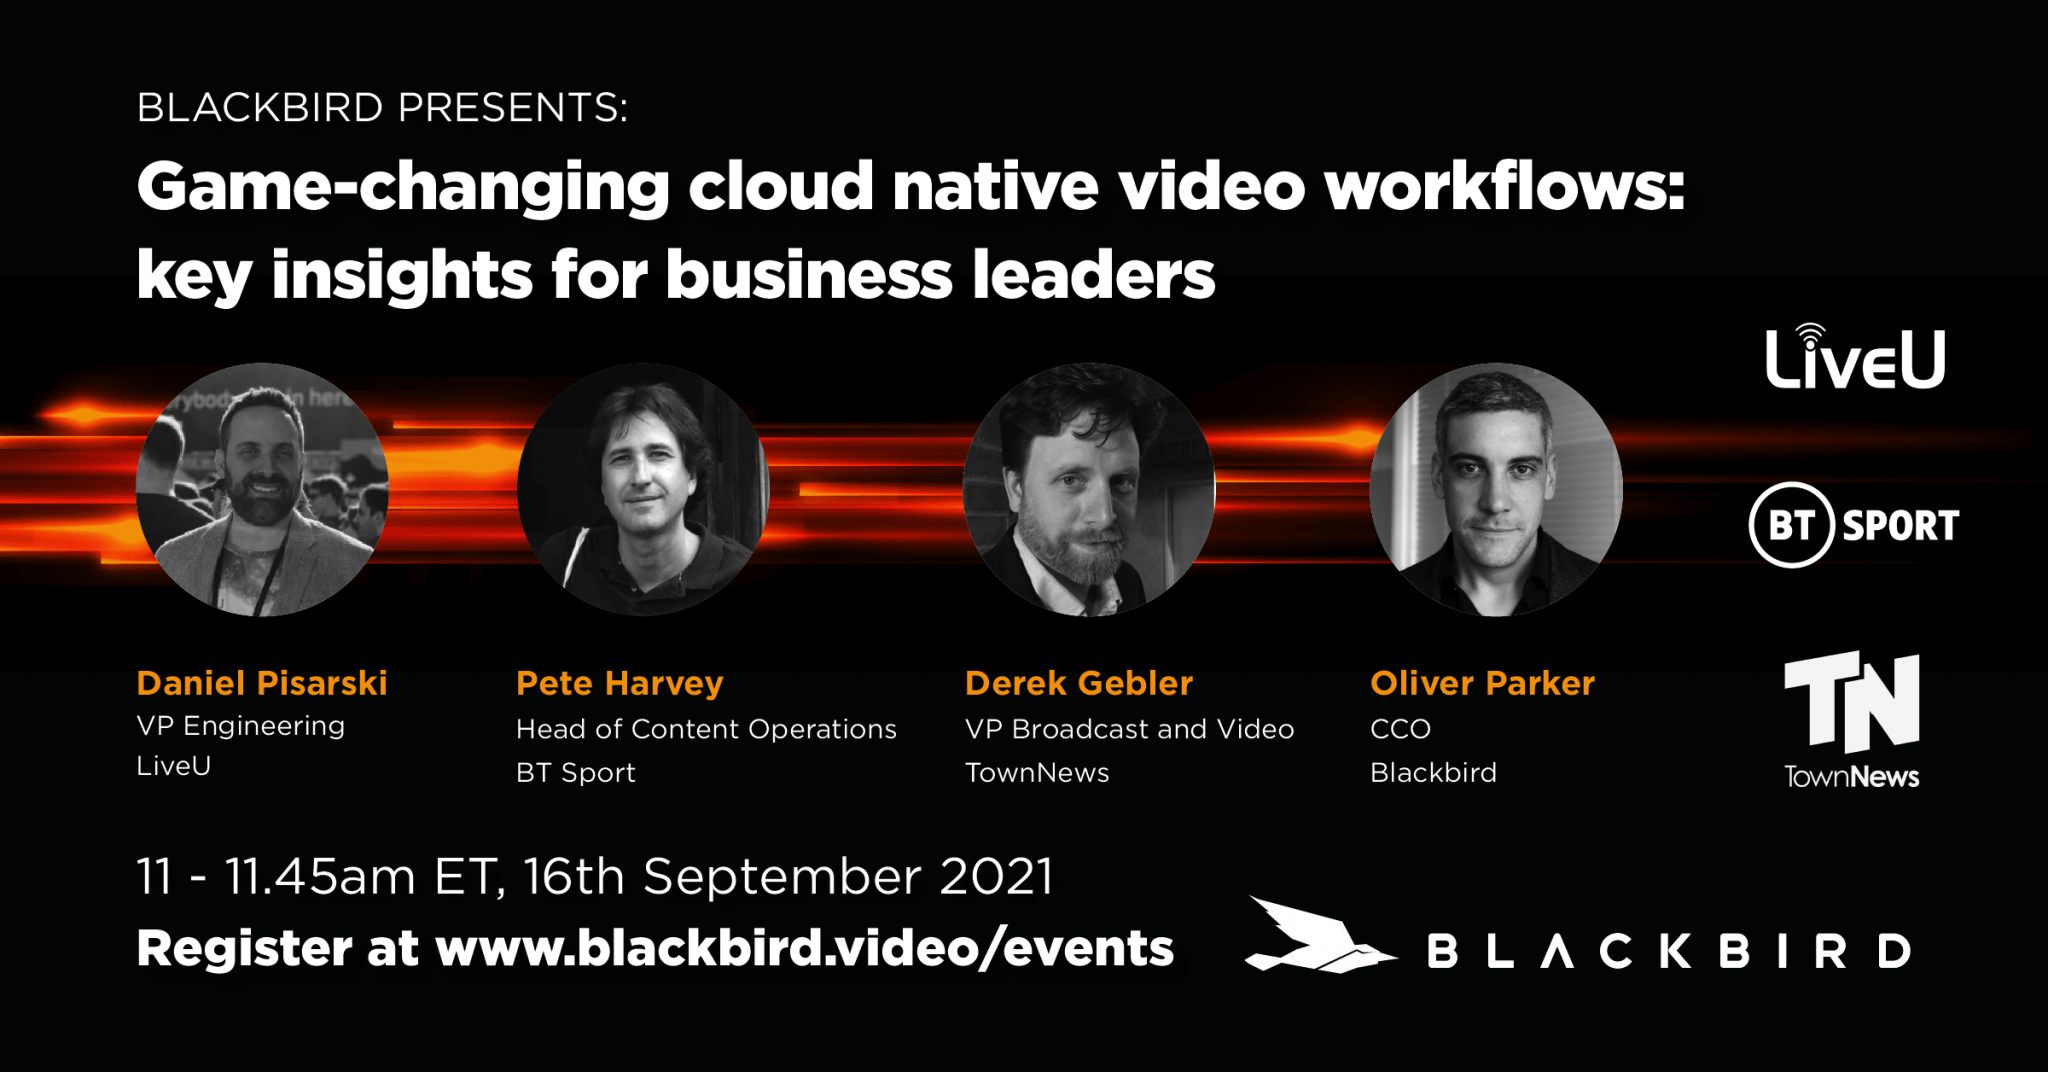 Game-changing cloud native video workflows: key insights for business leaders